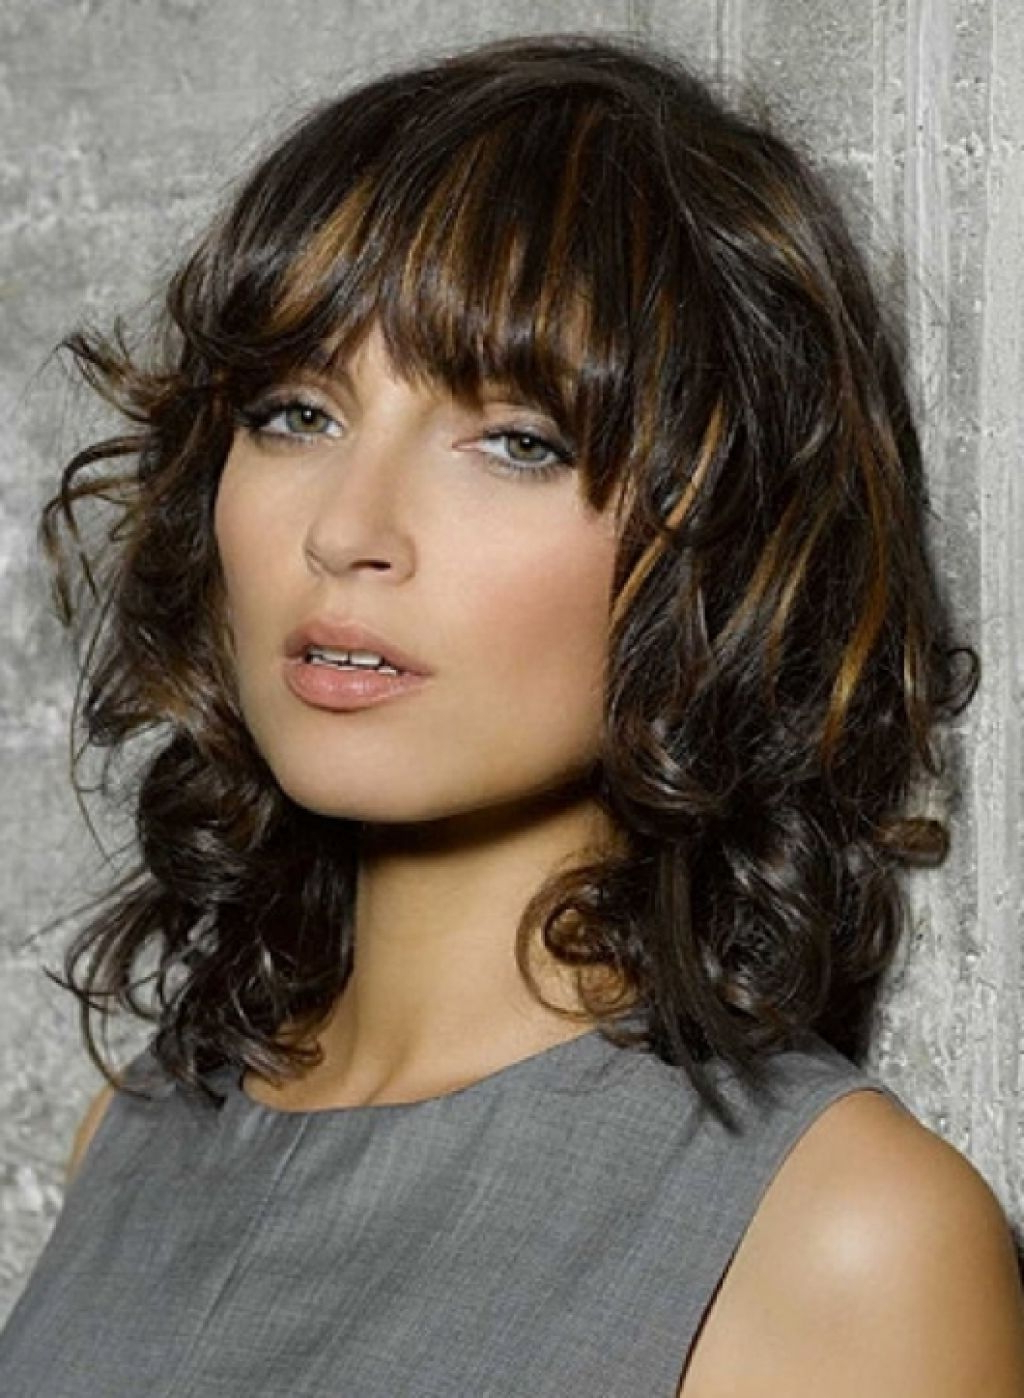 Medium Length Hairstyles With Side Fringe – Hairstyle For Women & Man With Regard To Popular Side Fringe Medium Hairstyles (View 12 of 20)